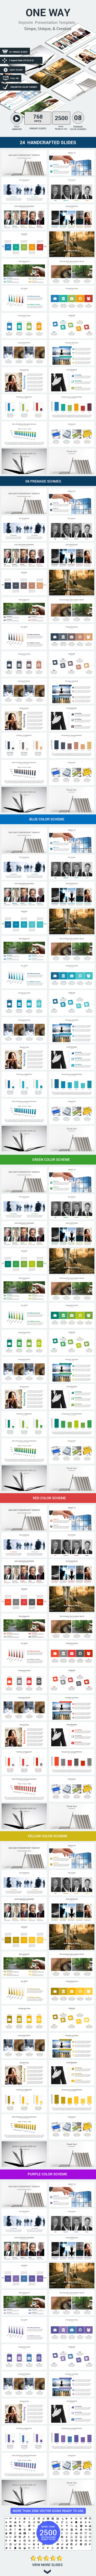 One Way Keynote Presentation Template - Keynote Templates Presentation Templates